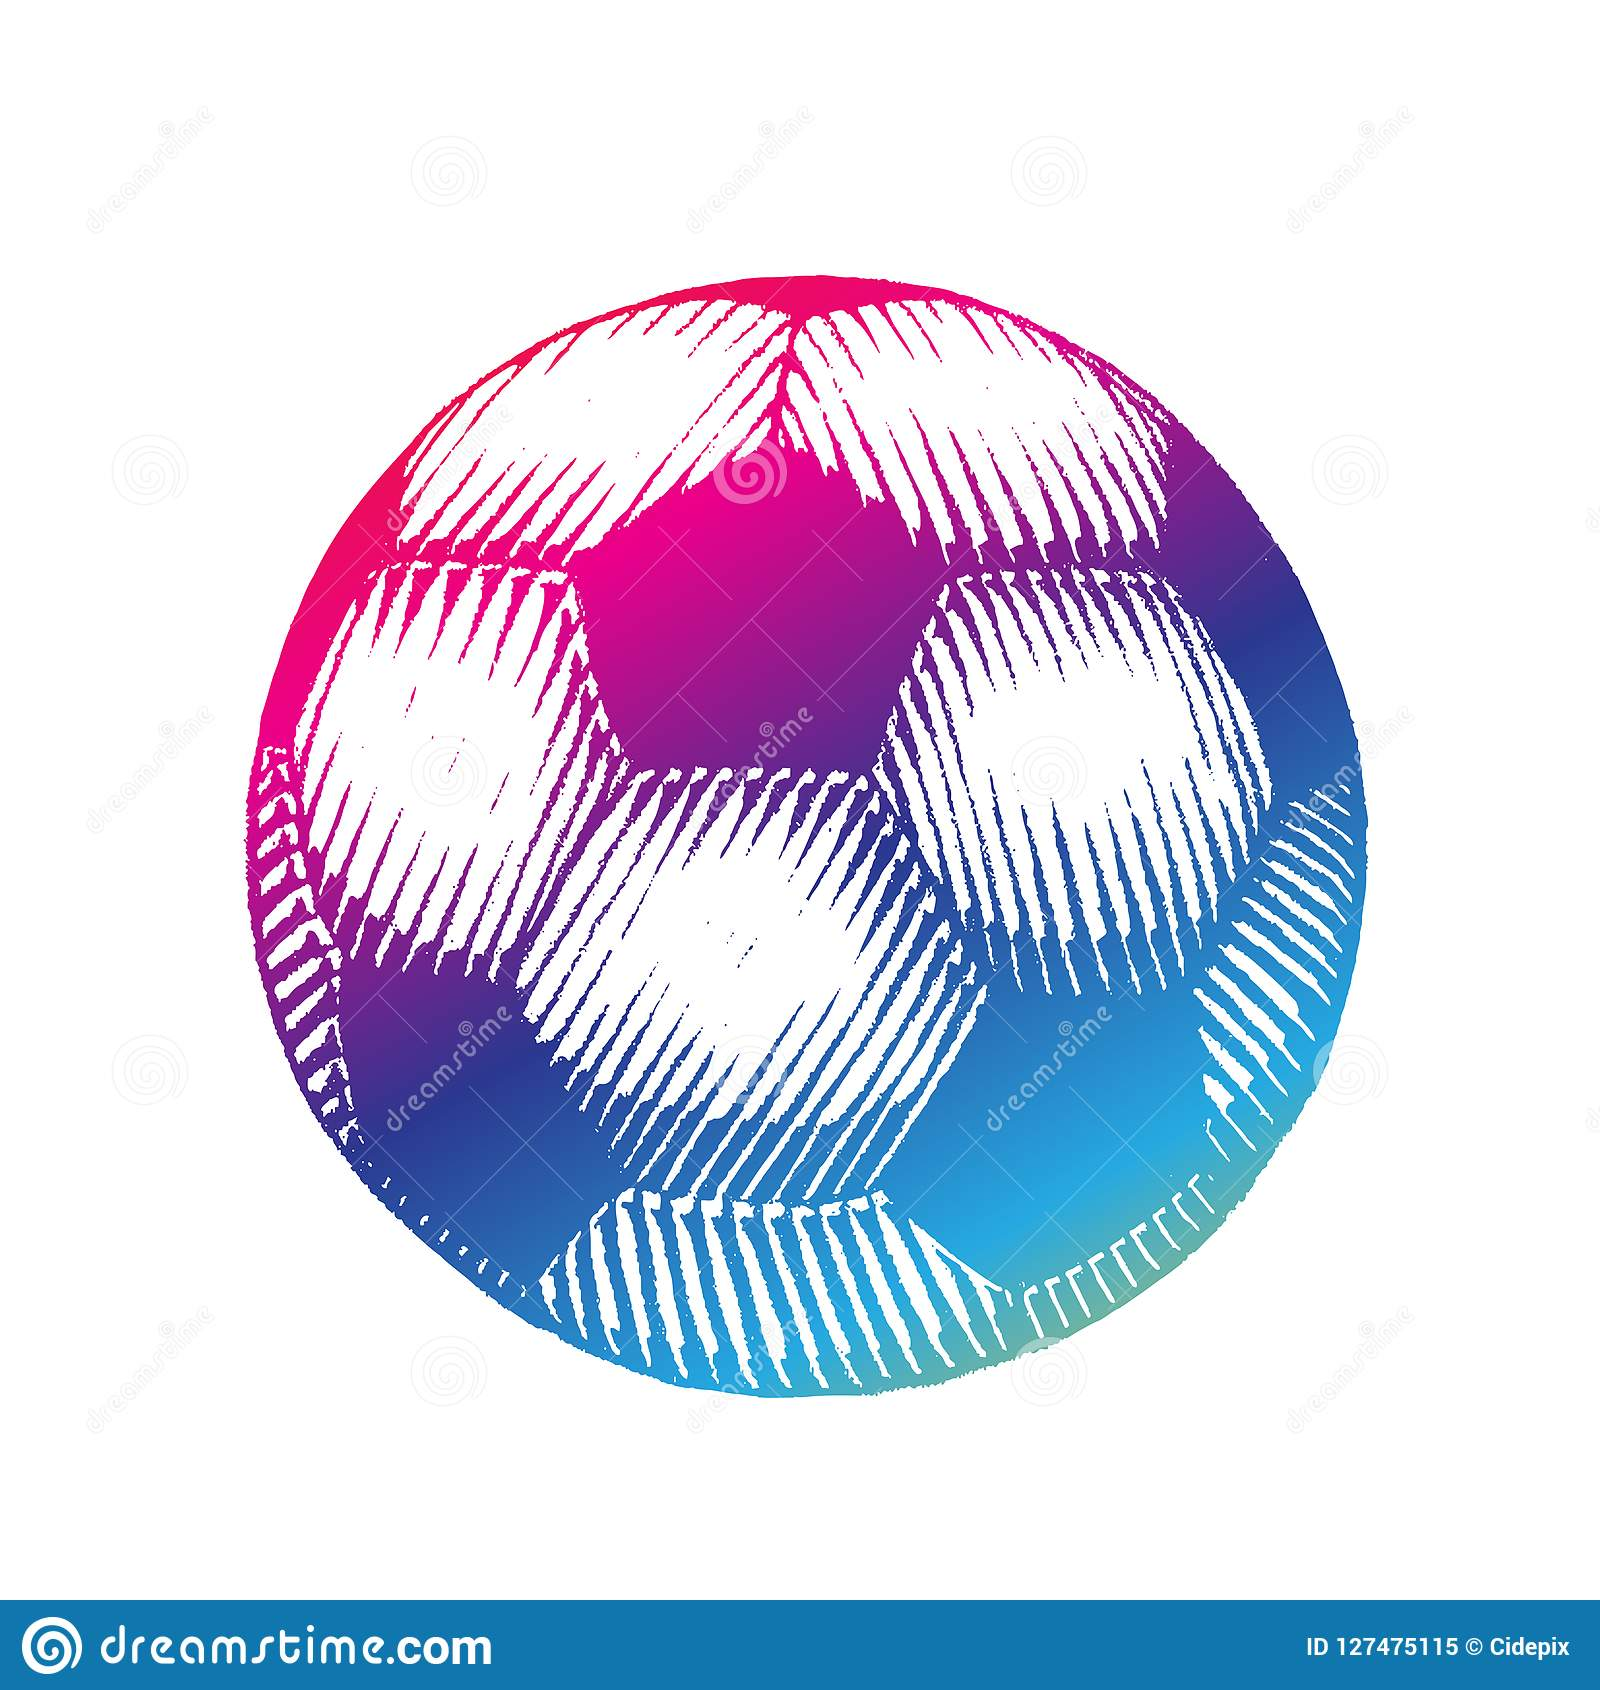 Rainbow Colored Vectorized Ink Sketch Of Soccer Ball